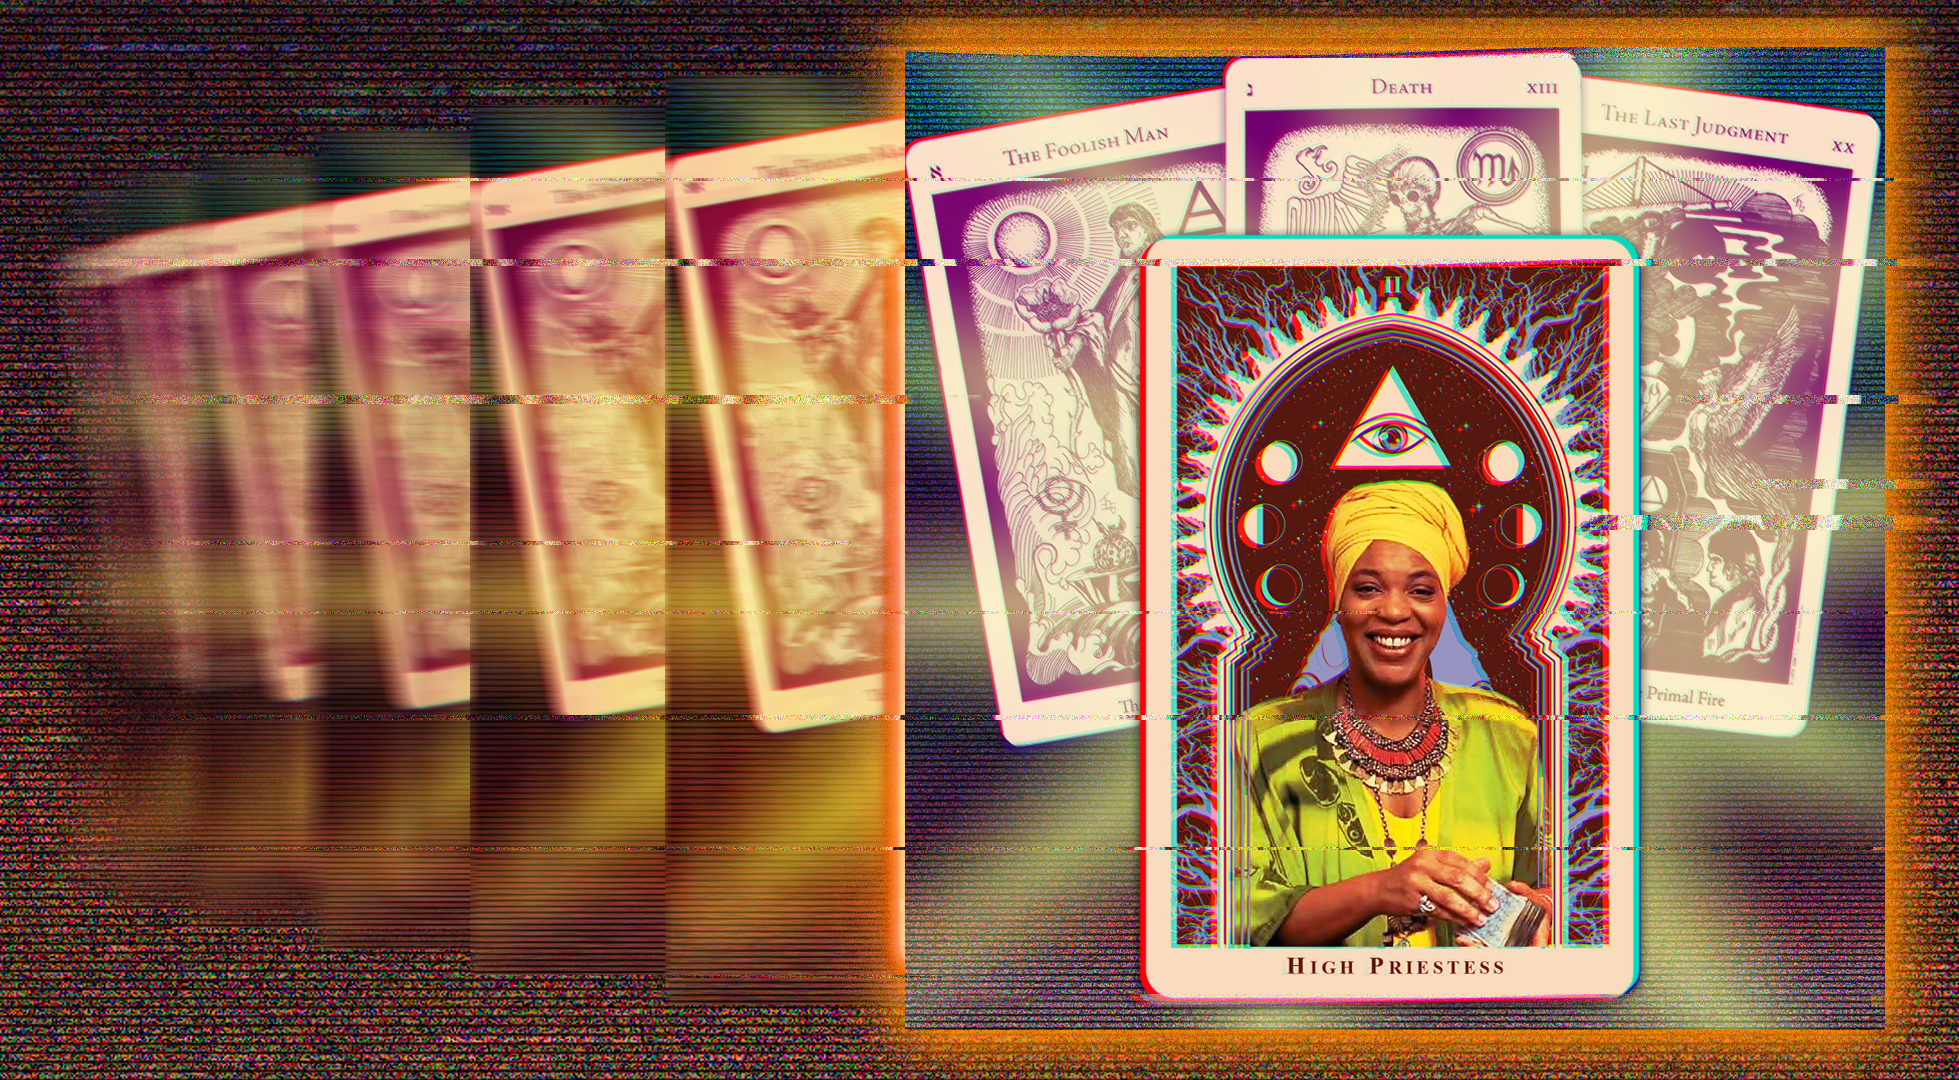 Miss Cleo, Psychic Friends Network